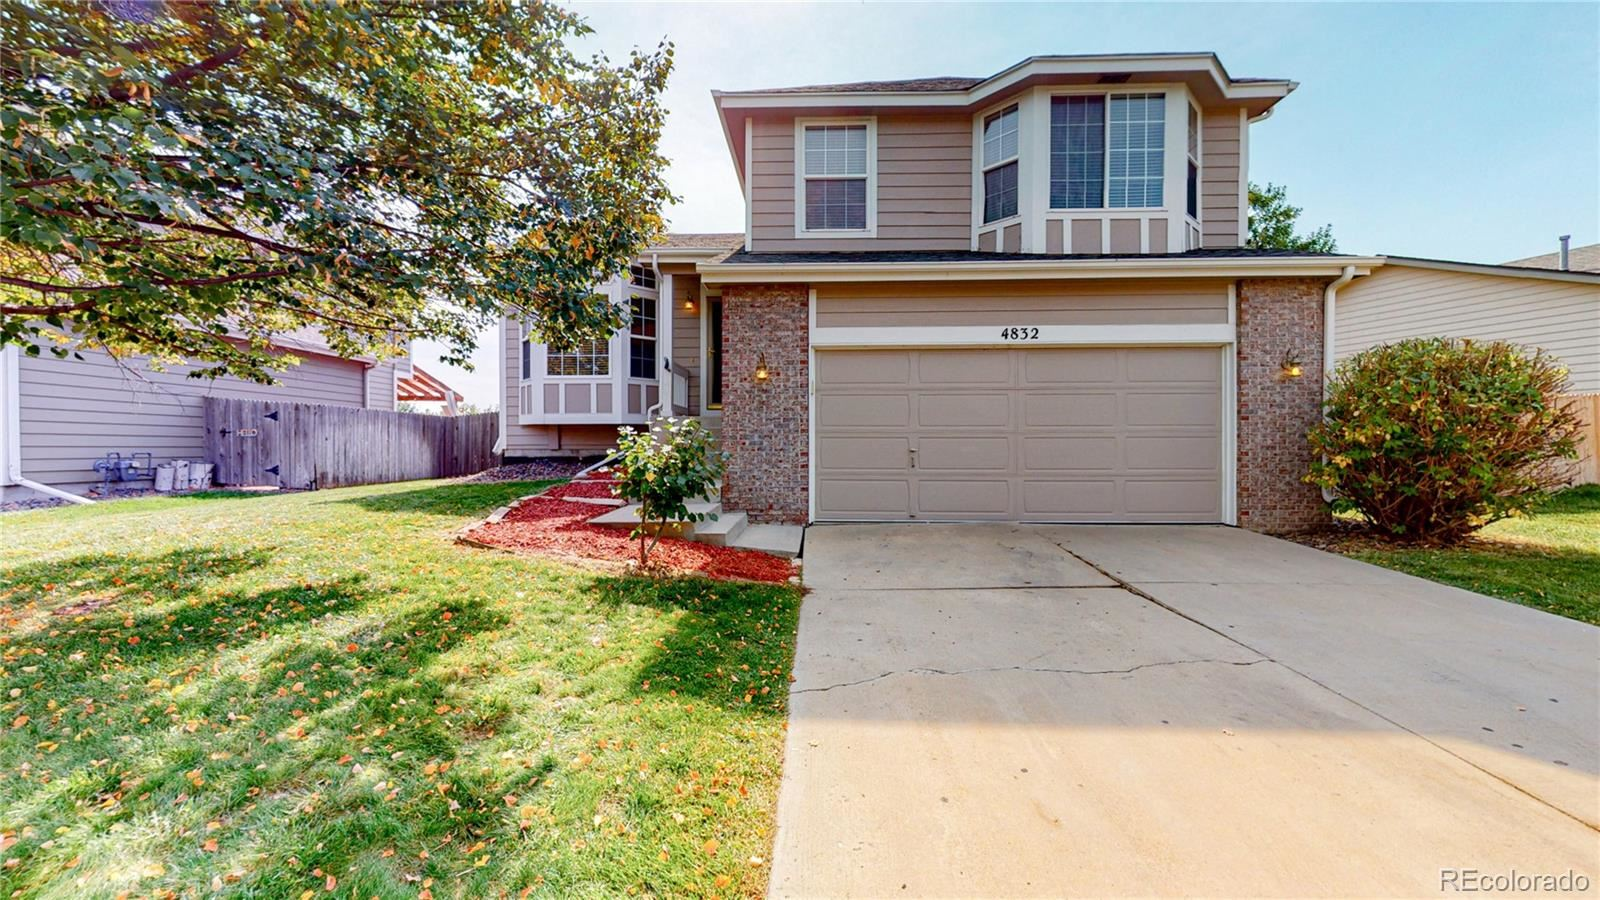 4832 W 123rd Place, Broomfield, CO 80020 - #: 5131880